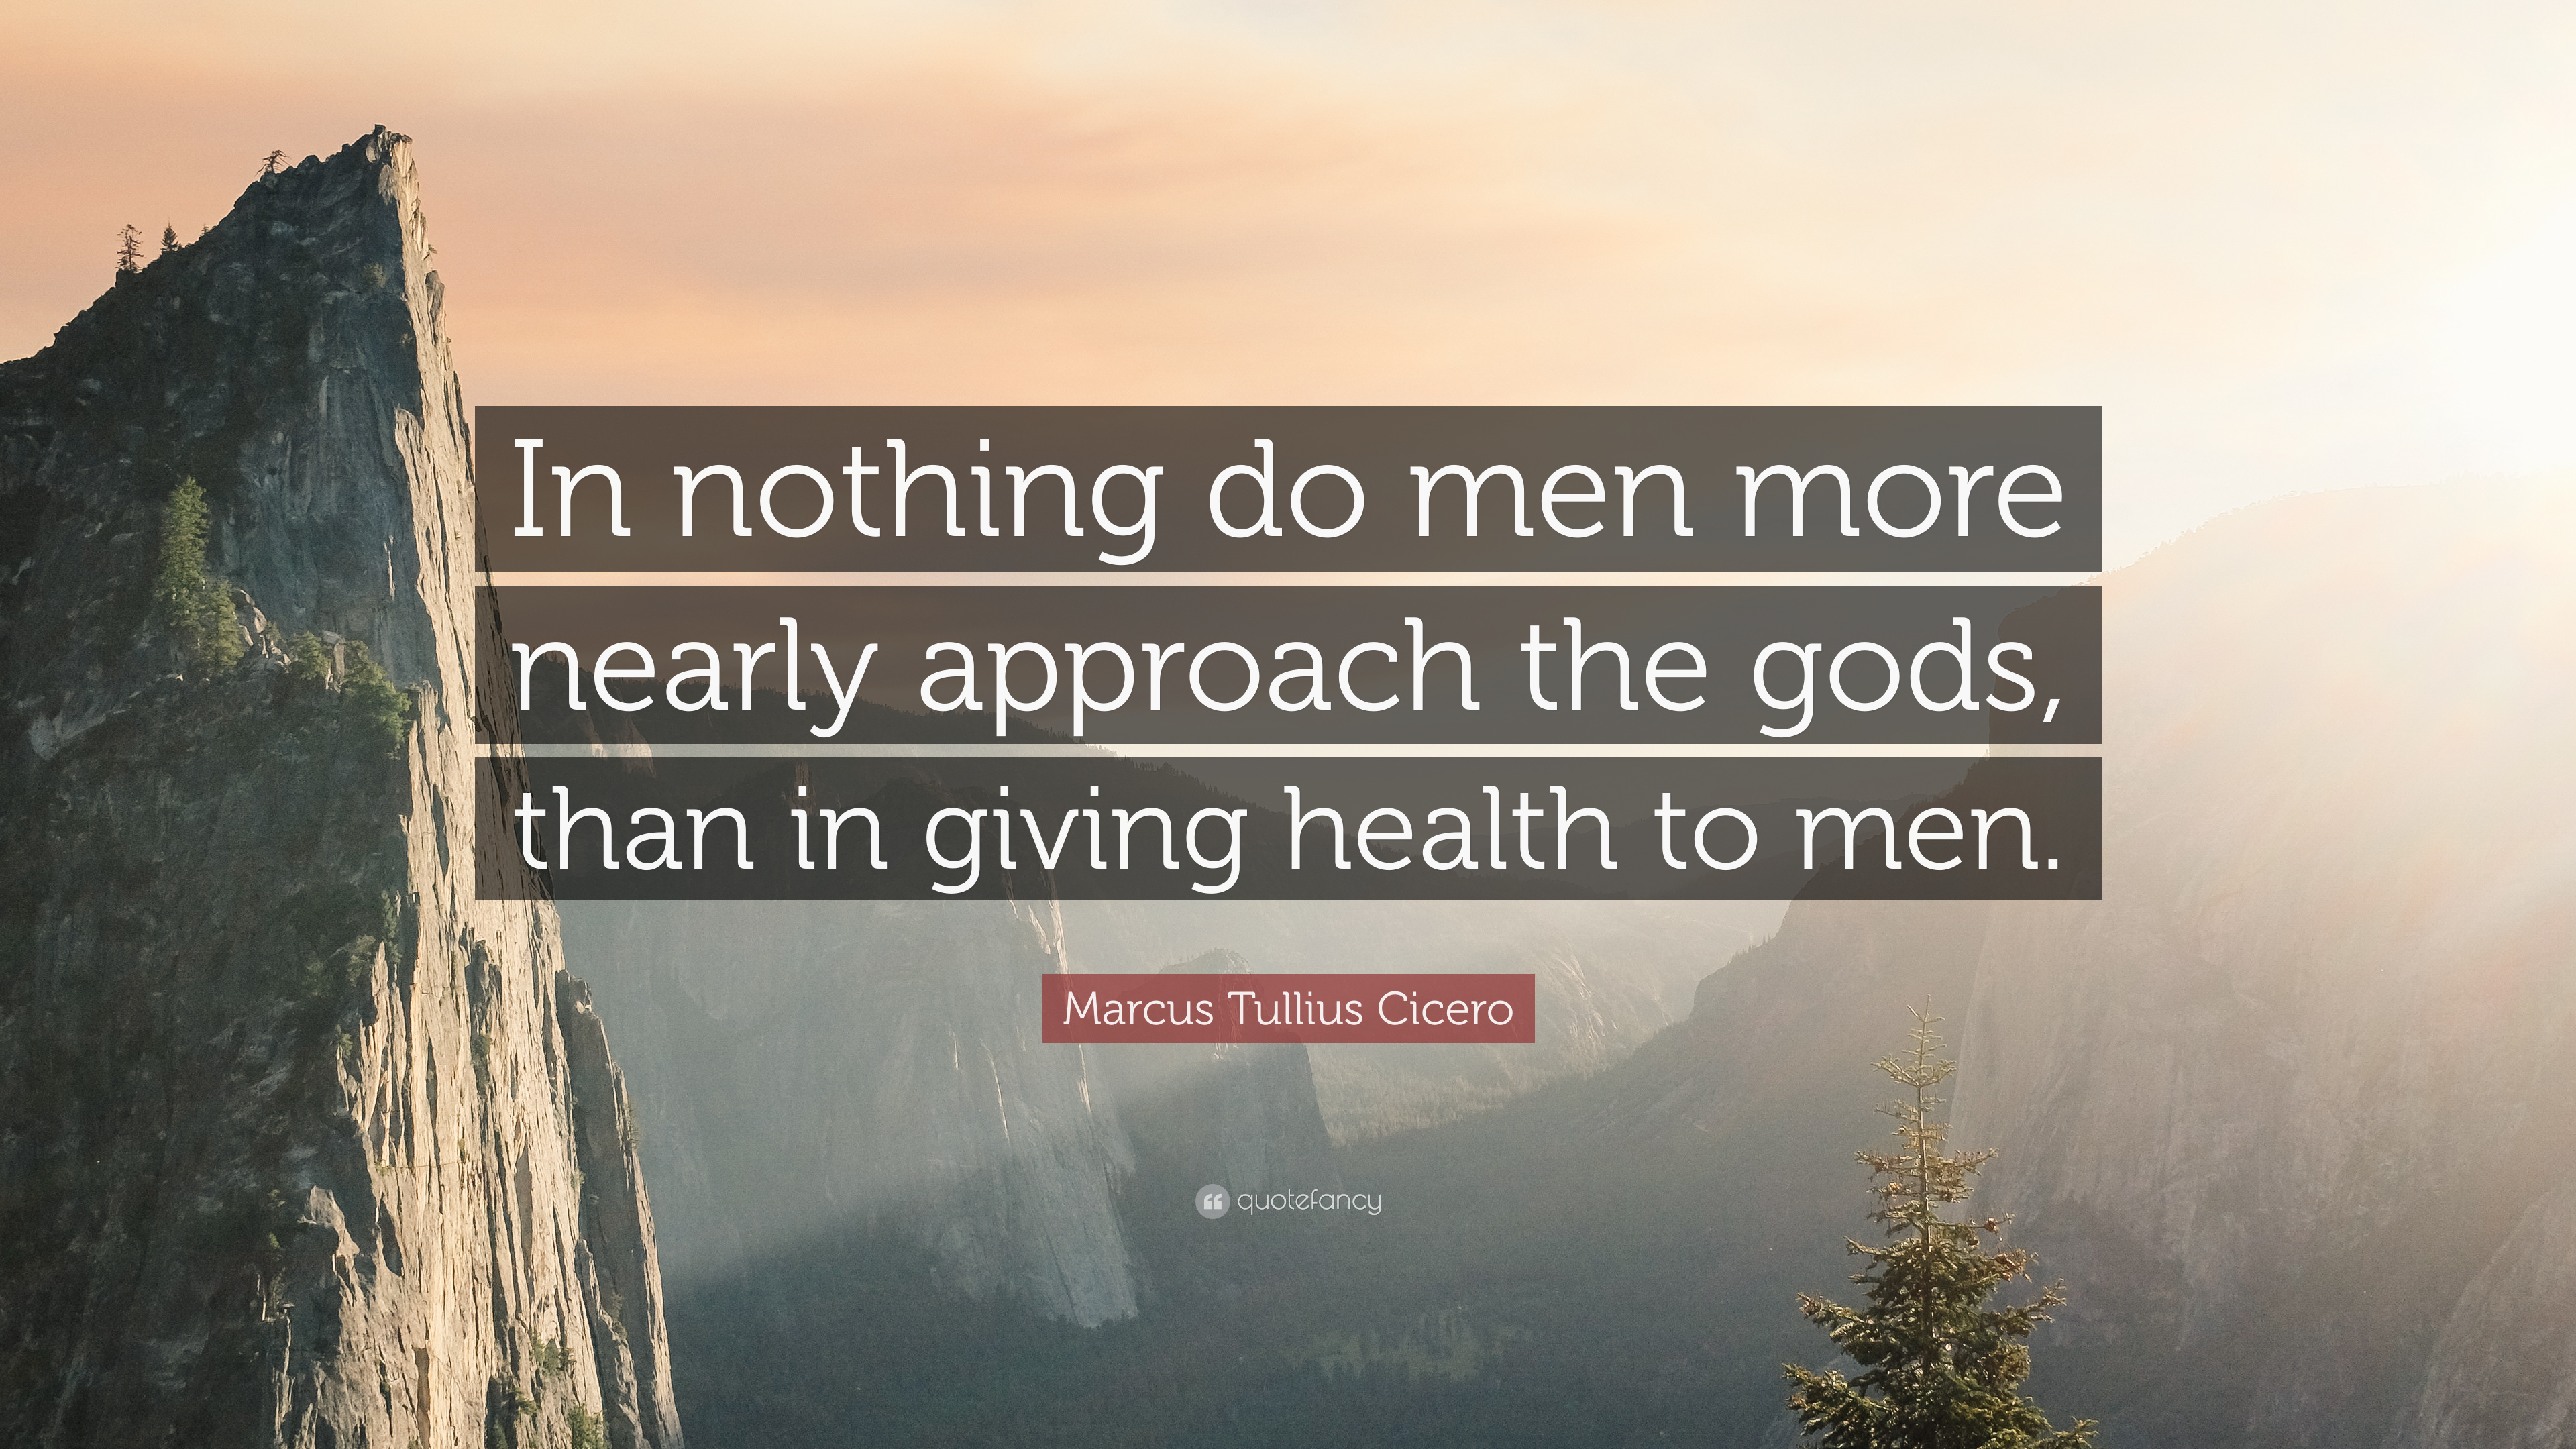 Marcus Tullius Cicero Quote In Nothing Do Men More Nearly Approach